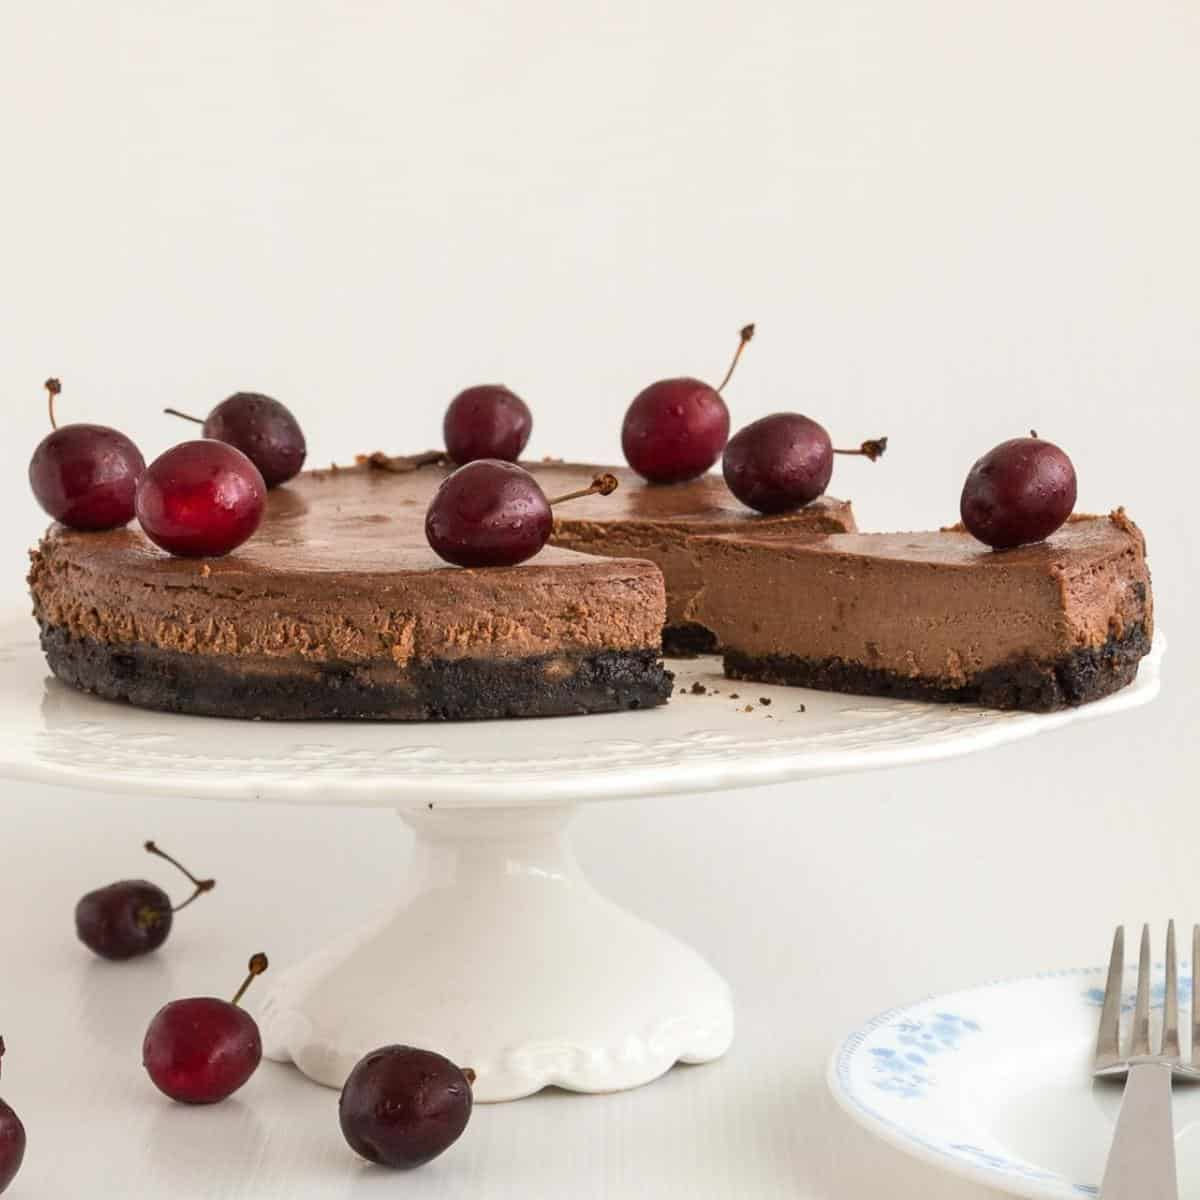 A sliced cheesecake on the cake stand.